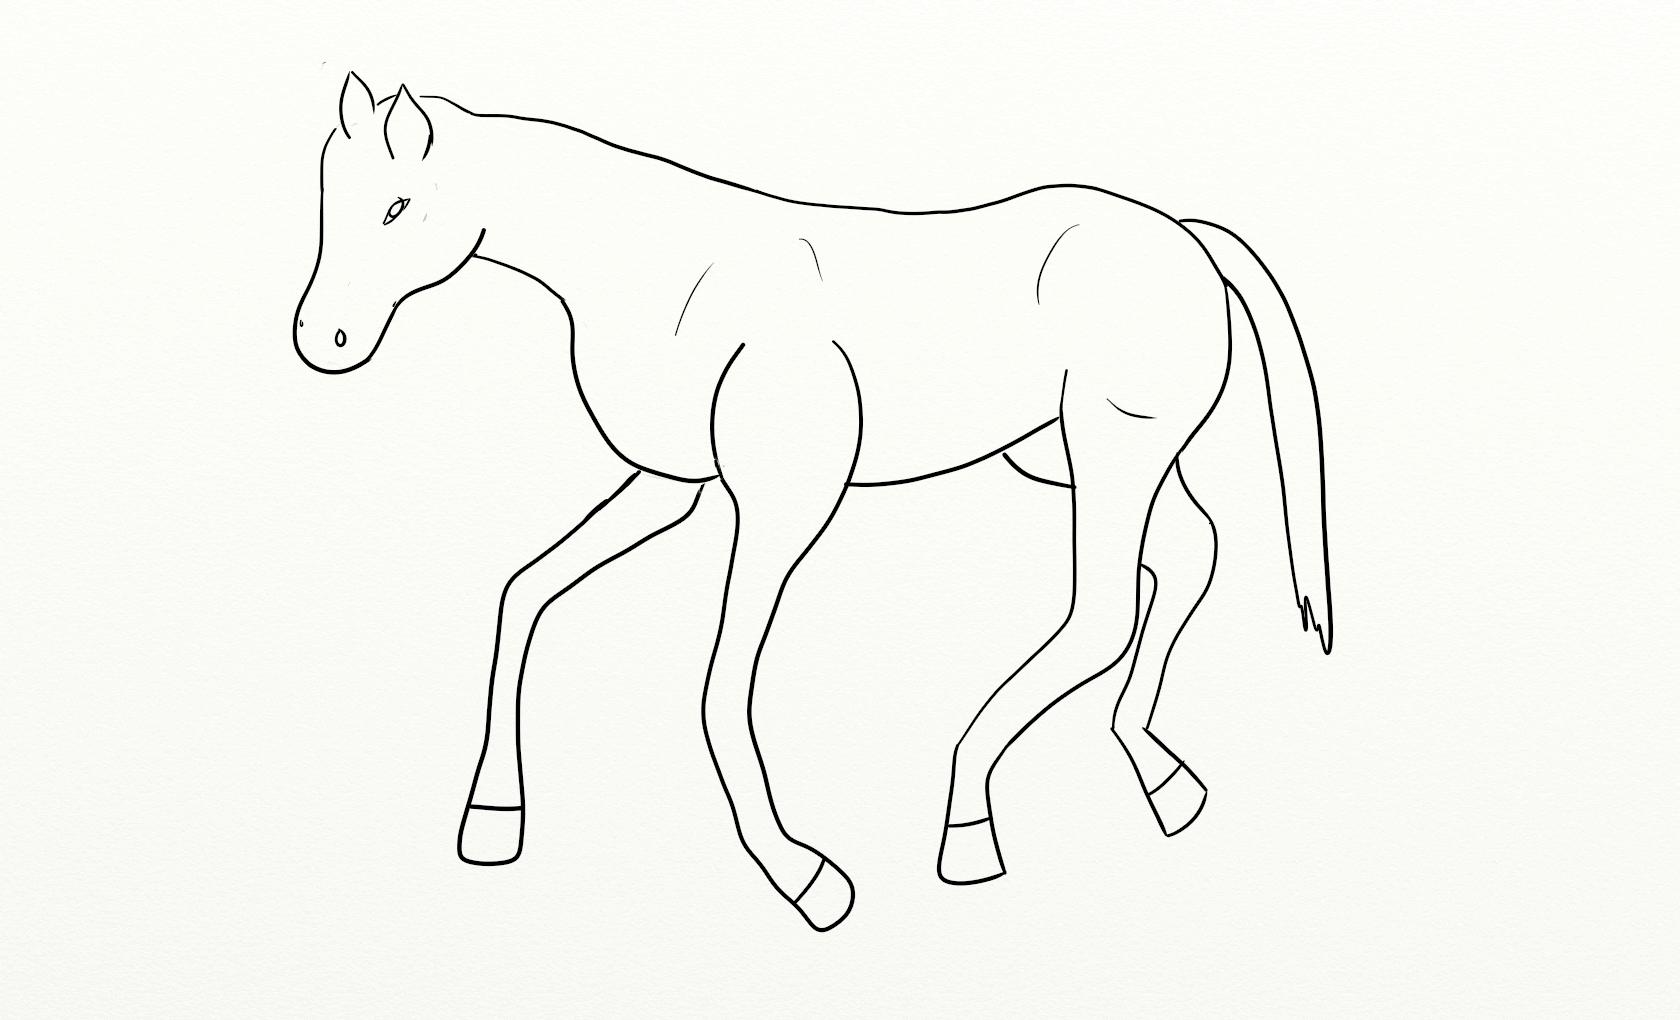 zebra outline drawing - photo #36